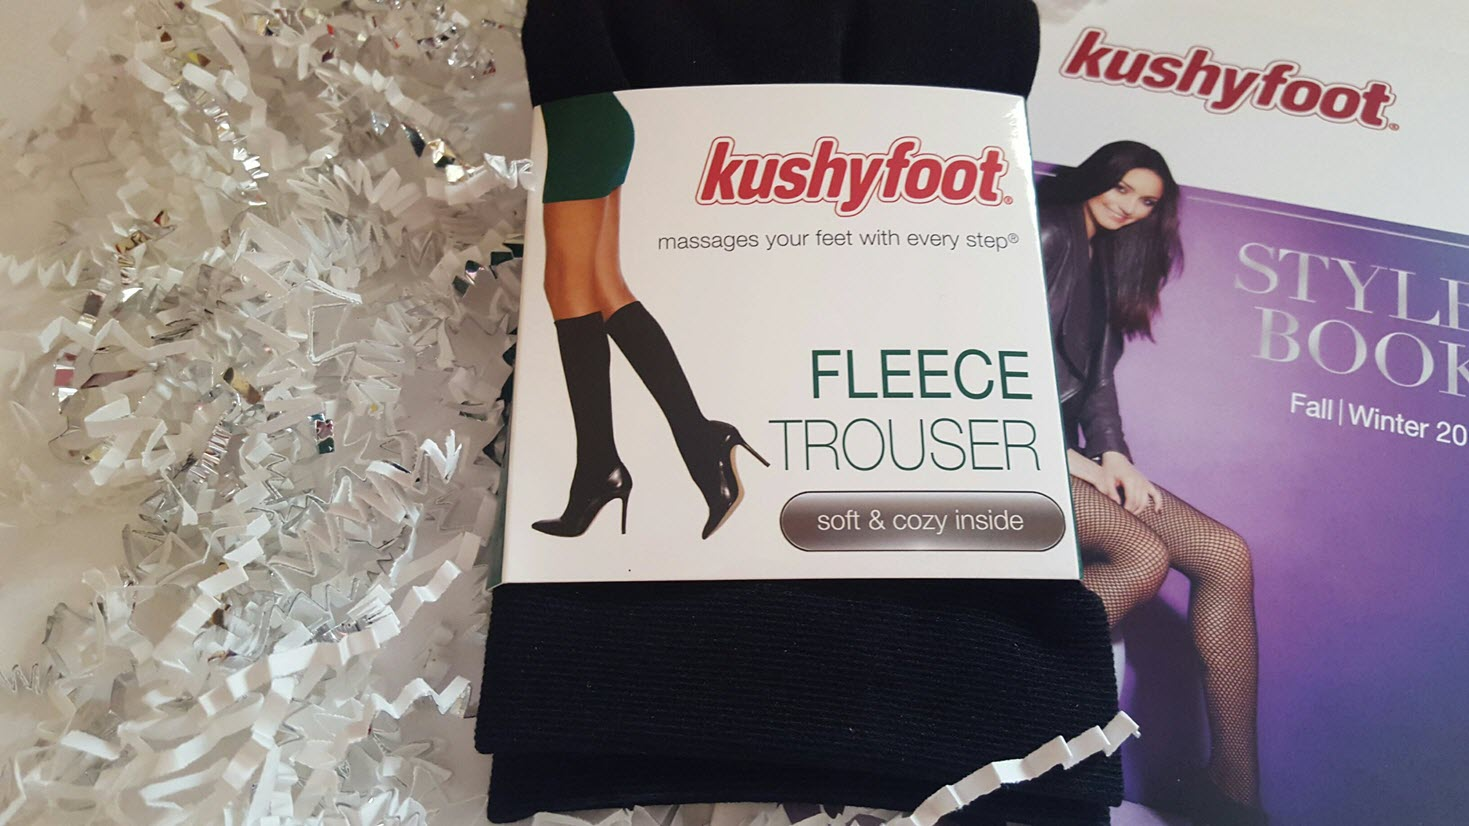 How To Look Stylish And Keep Your Legs Warm - And Giveaway!